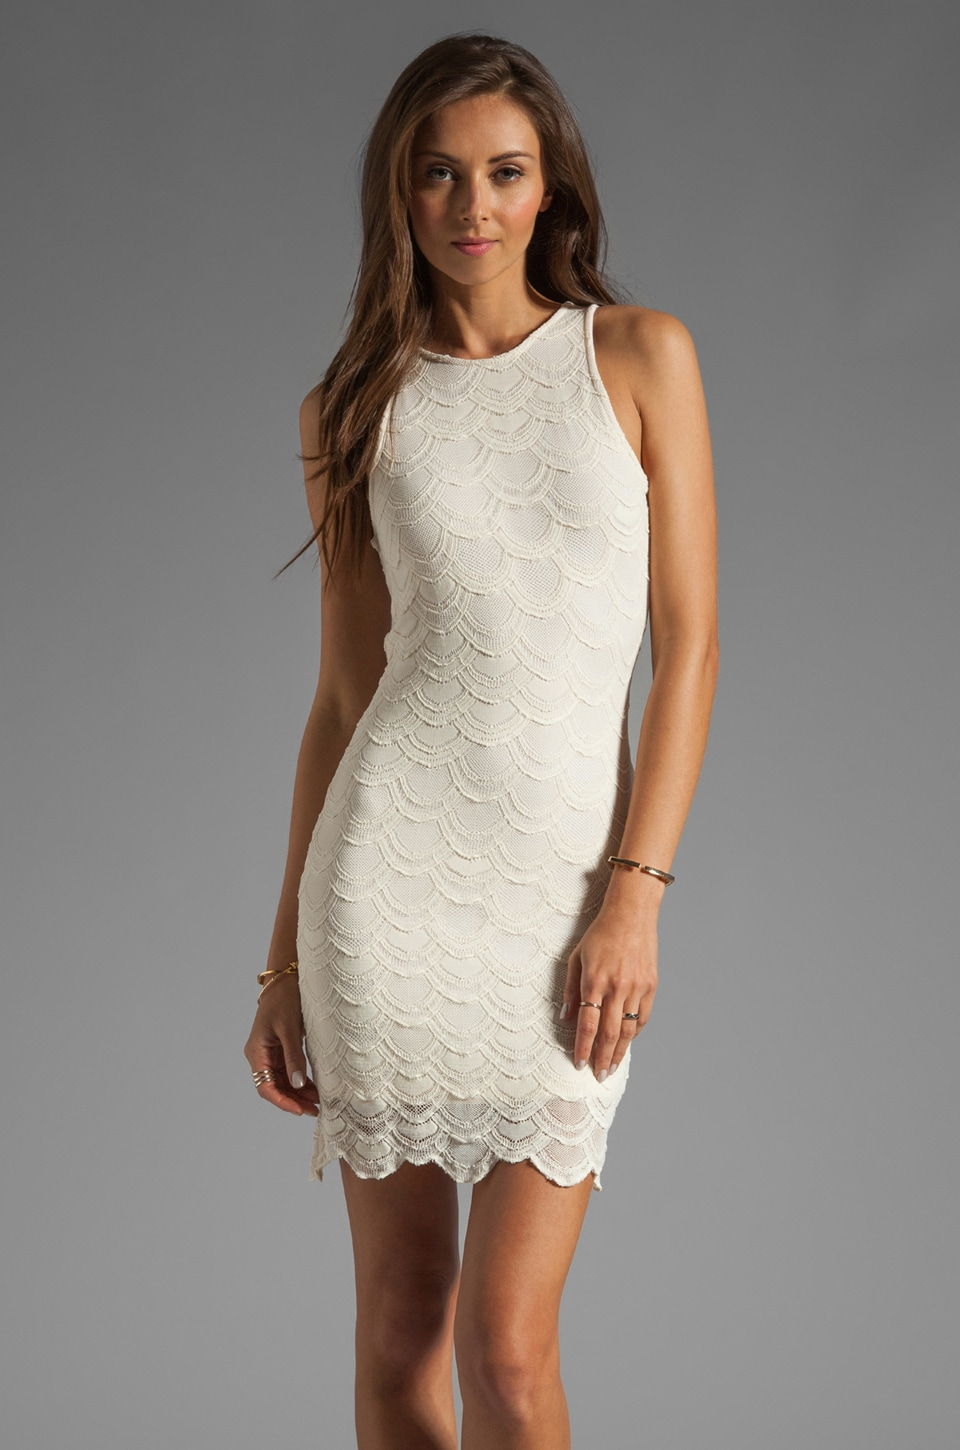 Nightcap Belize Victorian Lace Dress in Ivory